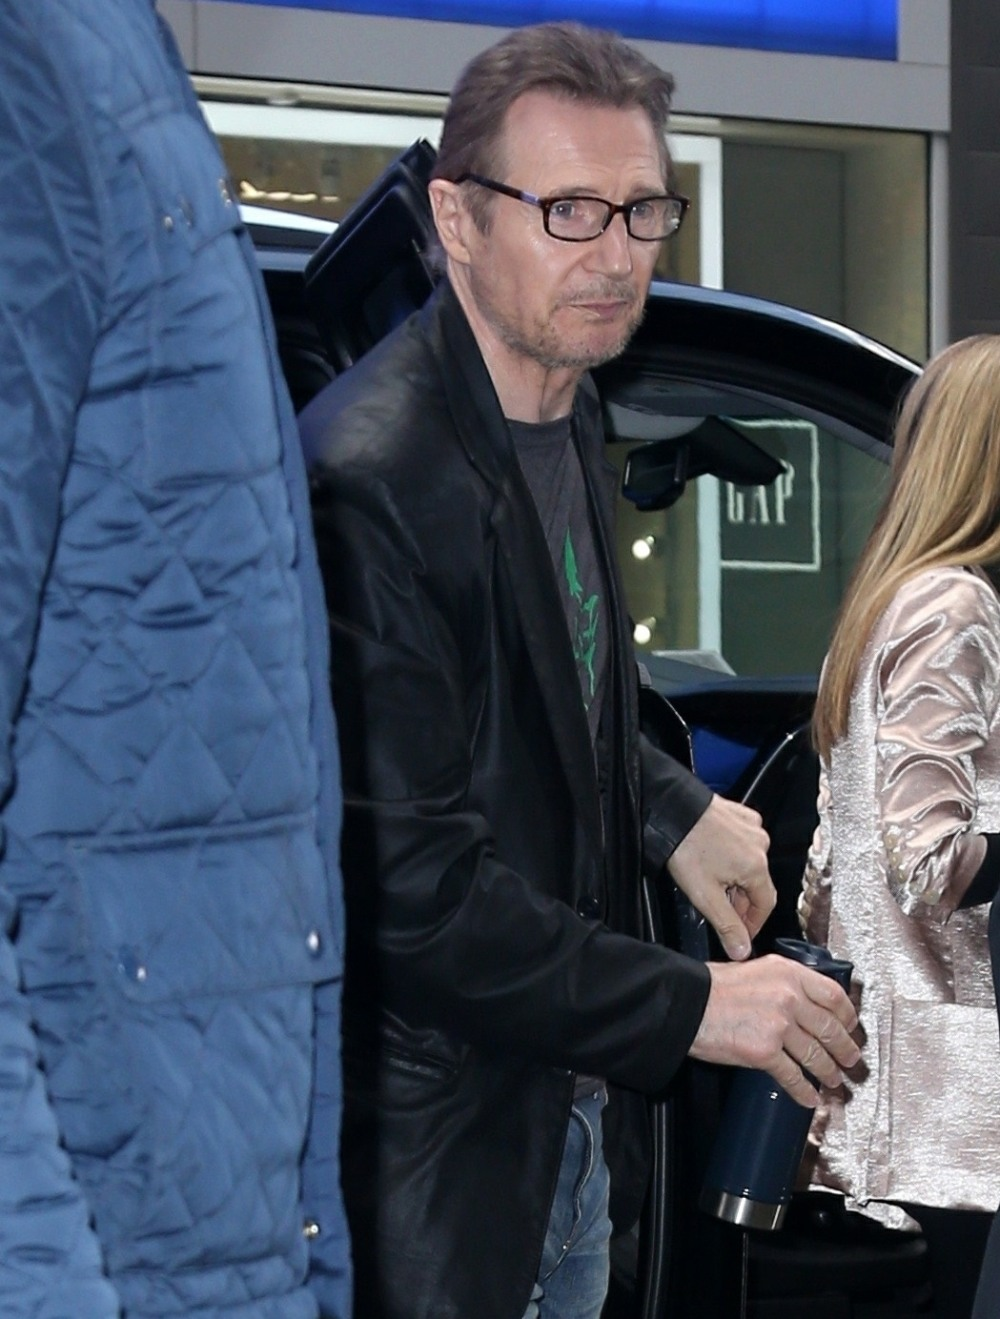 Liam Neeson is seen leaving GMA after being in the headlines regarding controversial remarks